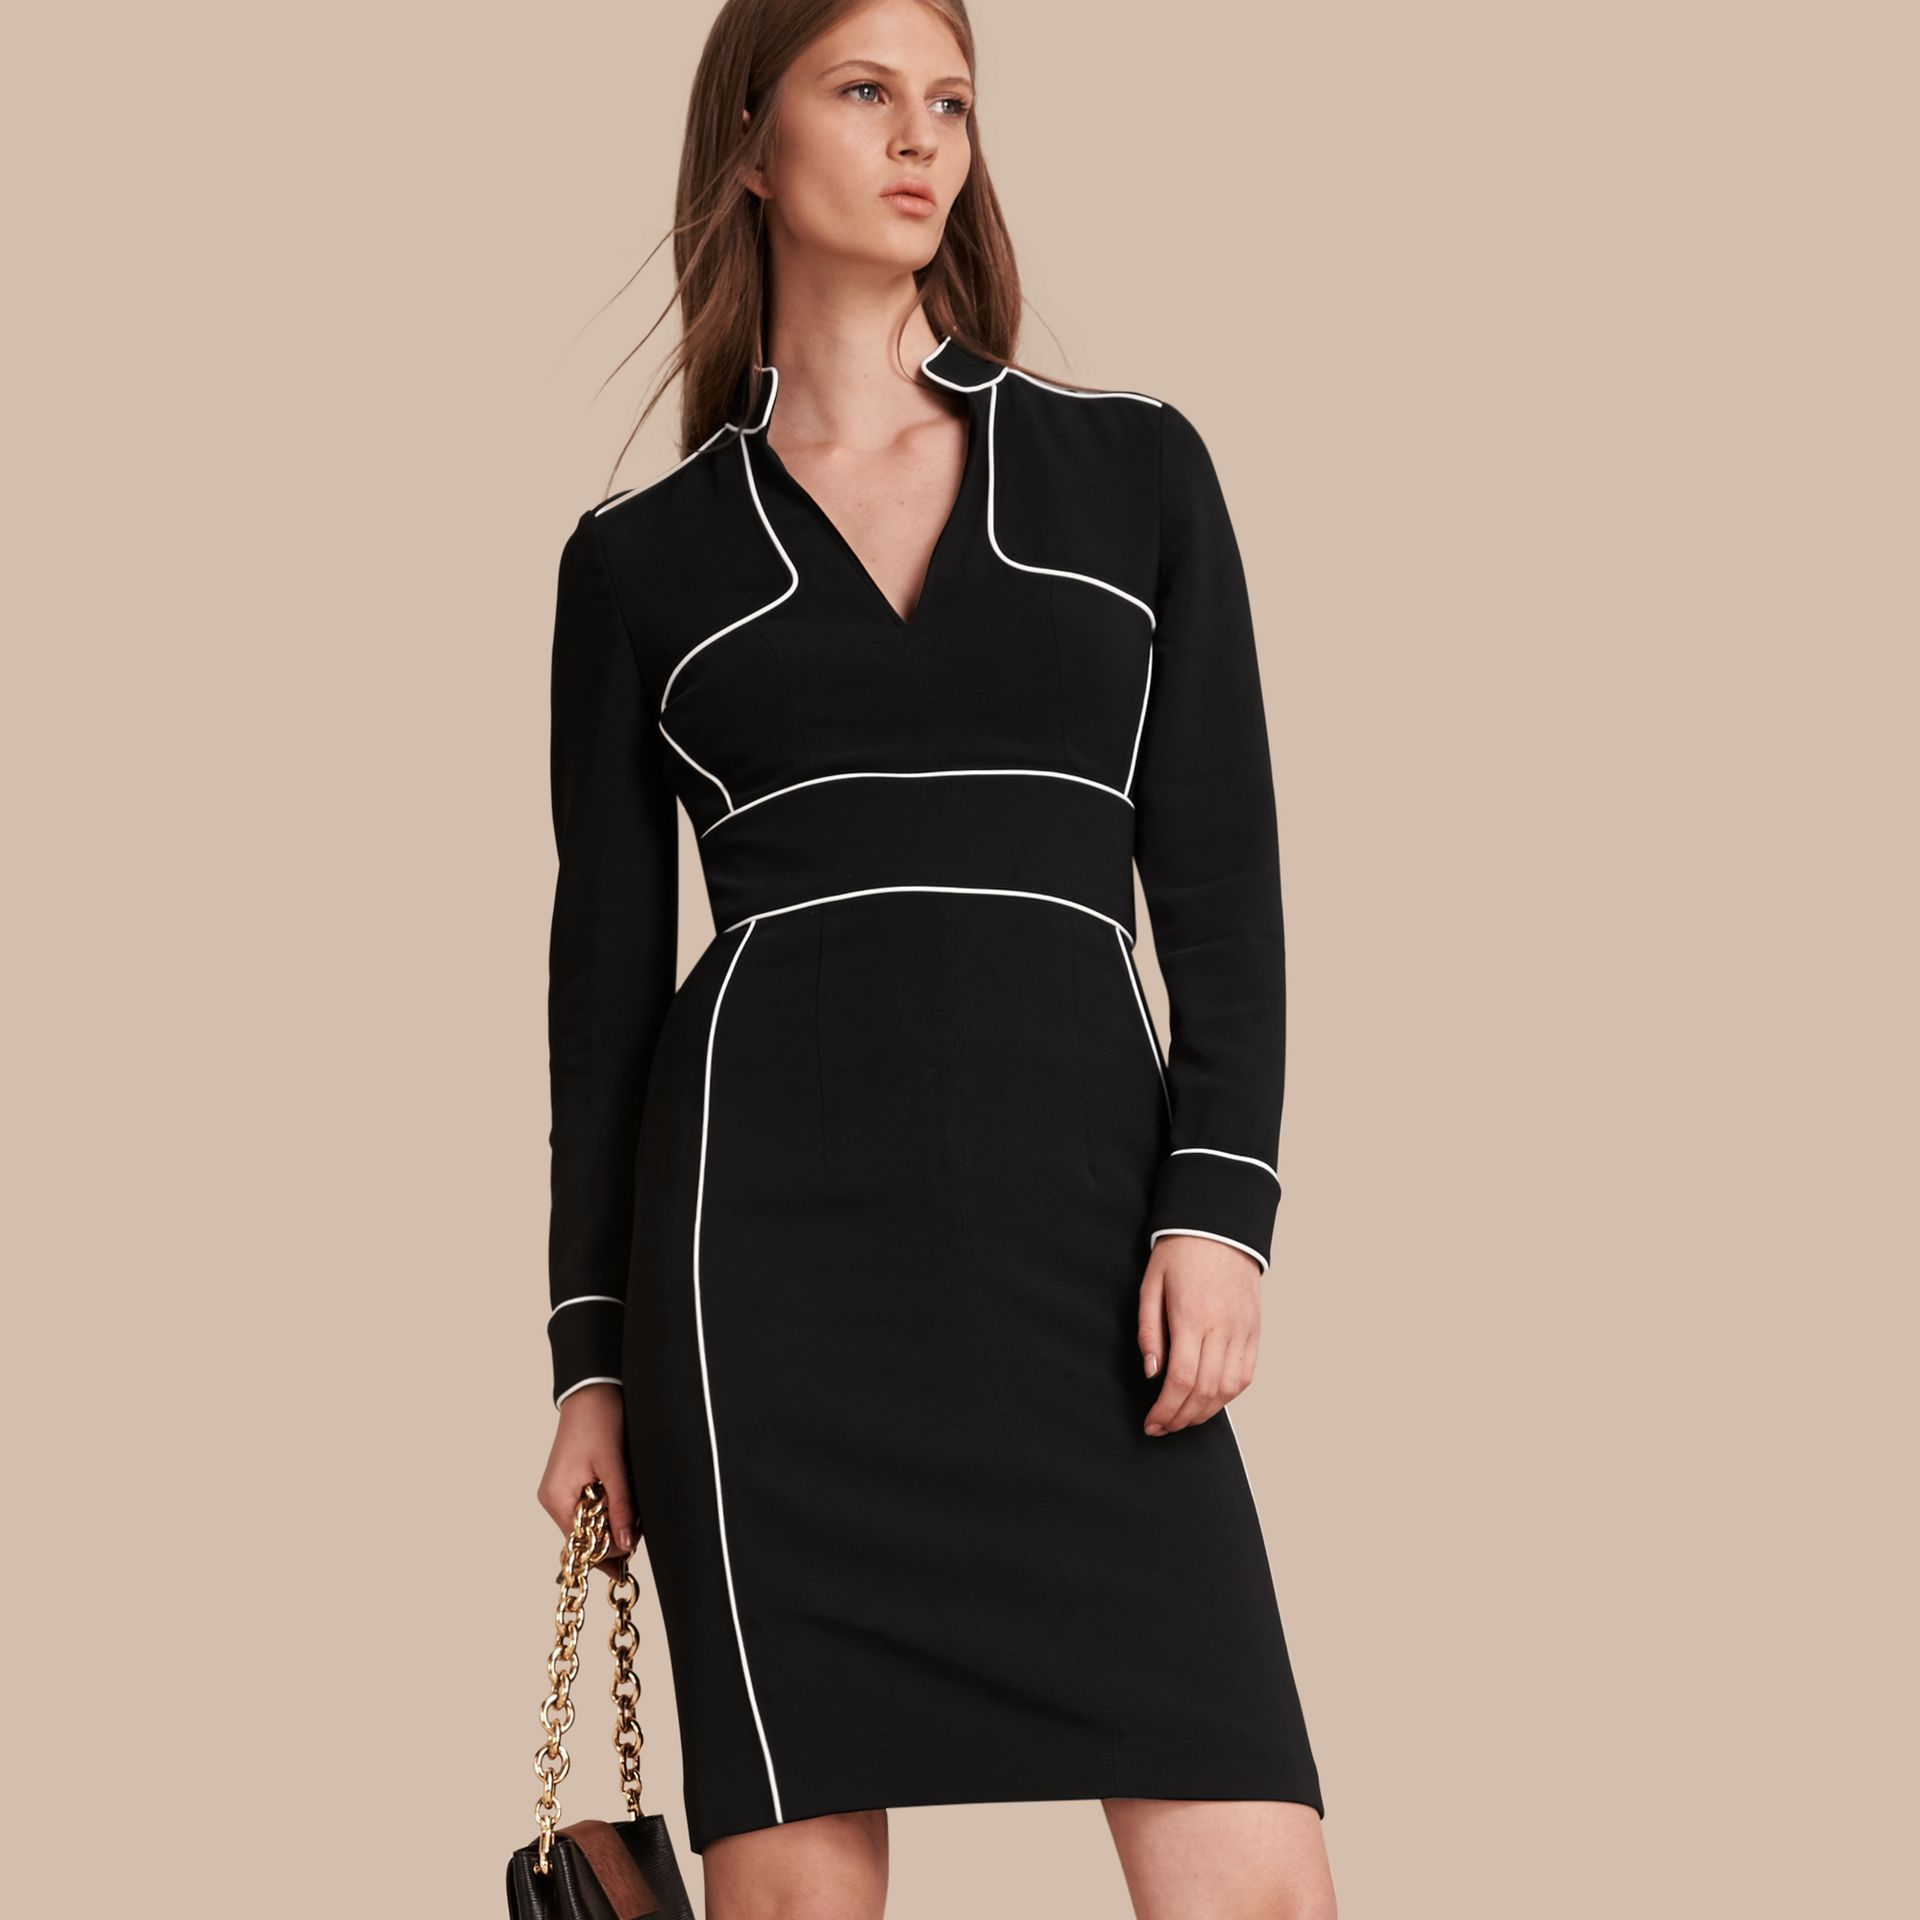 Black Long-sleeved Fitted Dress with Piping Detail - gallery image 1